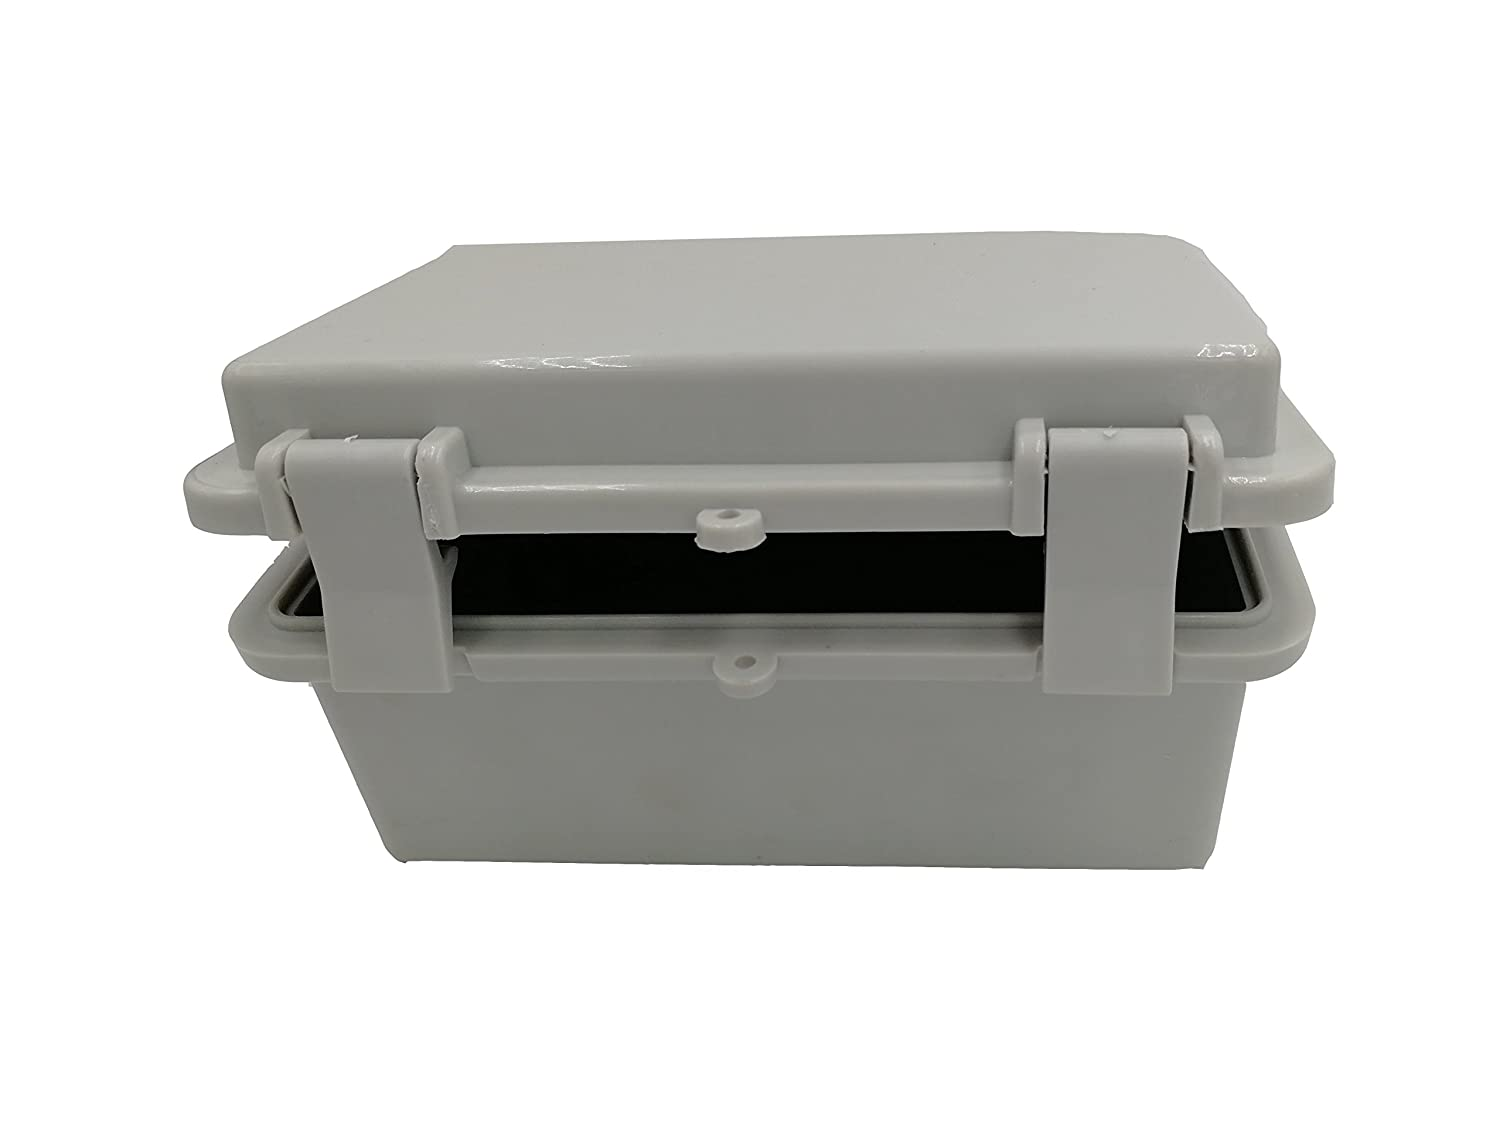 Awclub Waterproof Dustproof IP65 ABS Plastic Electric Junction Box Hinged Shell Outdoor Universal Durable Project Enclosure Gray With Lock 5.9x4x2.75 150mmx100mmx70mm